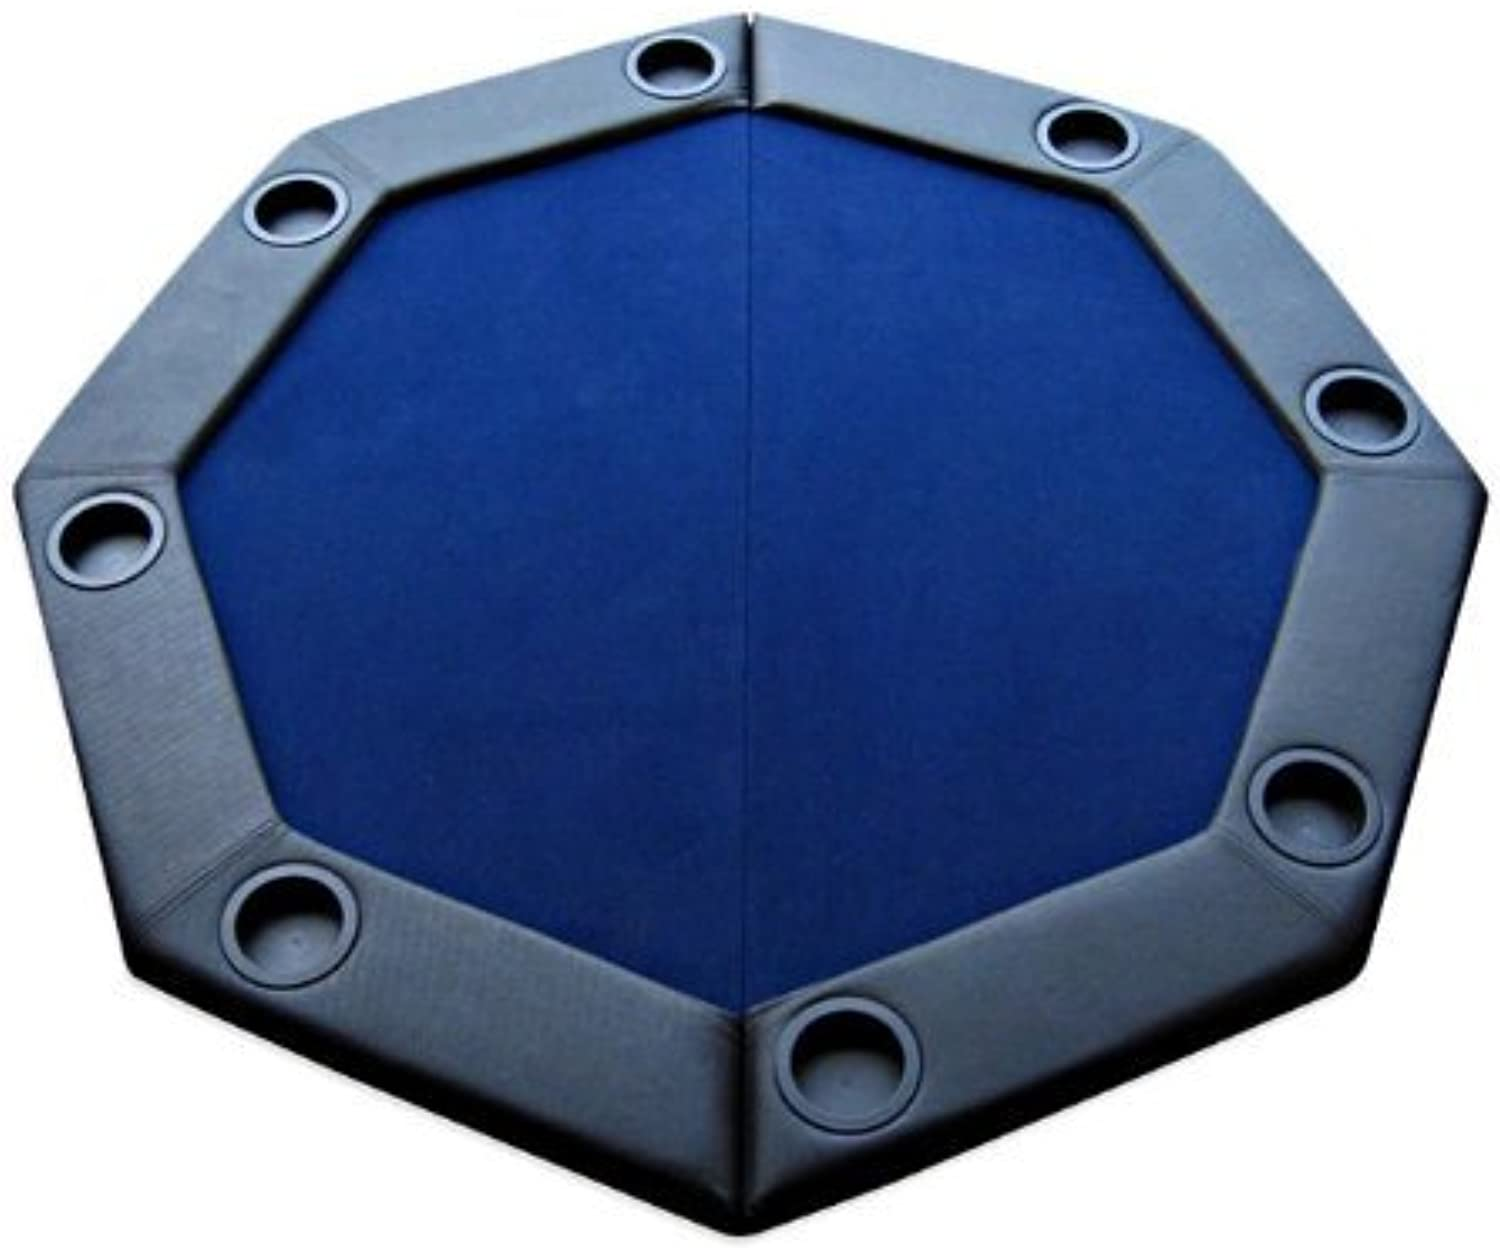 Padded Octagon Folding Poker Table Top with Cup Holders - Blau Farbe by JPC